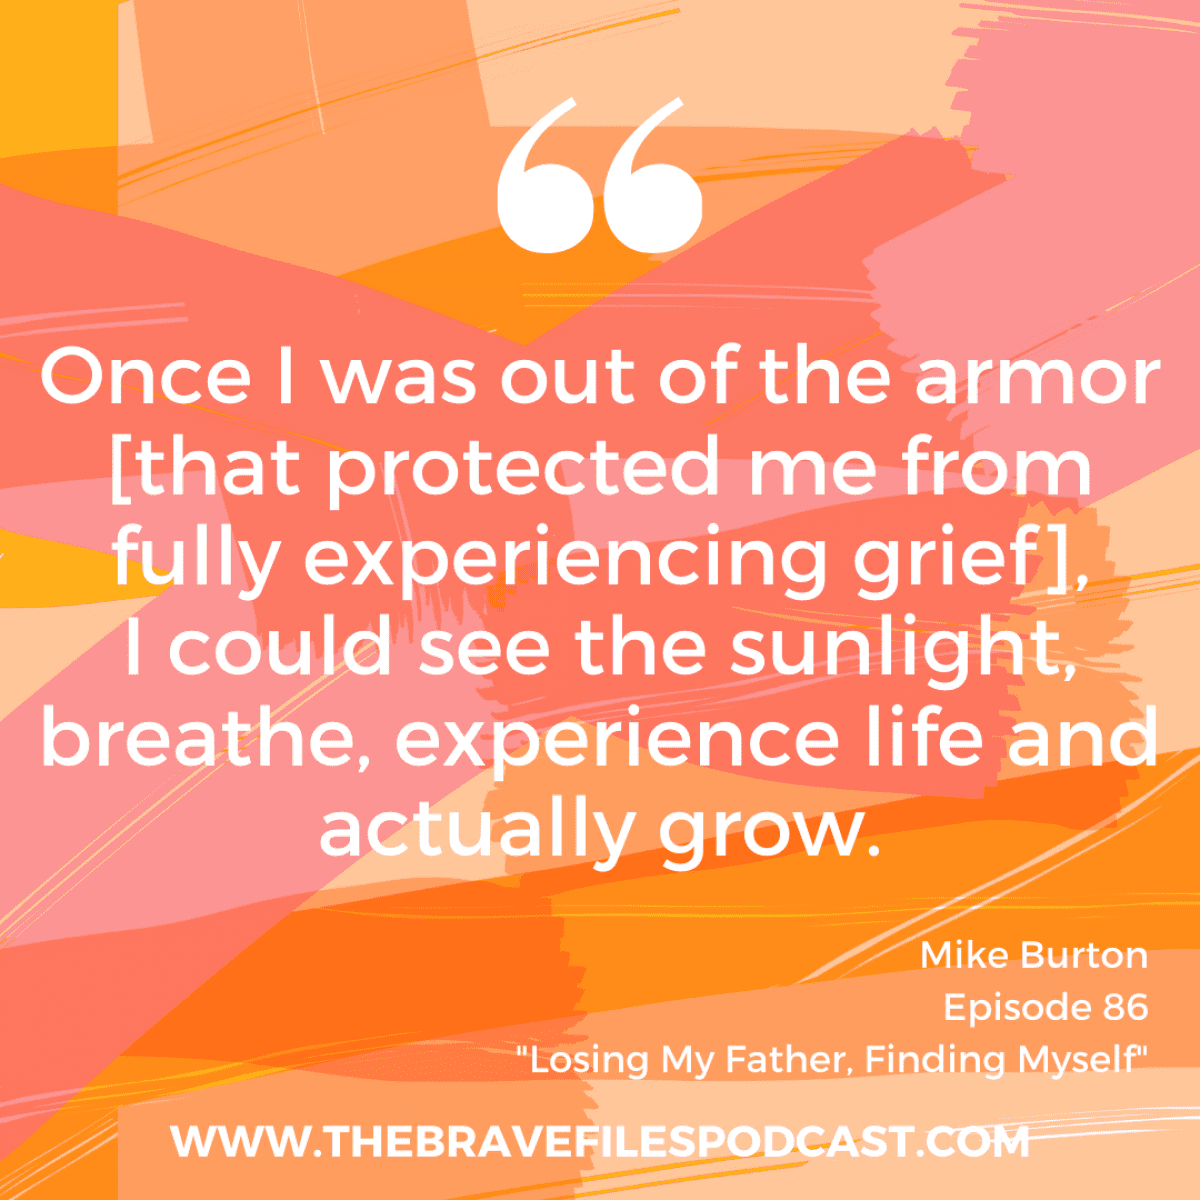 After the loss of his father, Mike Burton found himself grappling with his own grief process and learning to grow through it. Join us as we discuss the power found in acknowledging when we're wrong and the breakthrough that happens when we take off the armor and allow ourselves to experience real, raw emotions. The Brave Files.